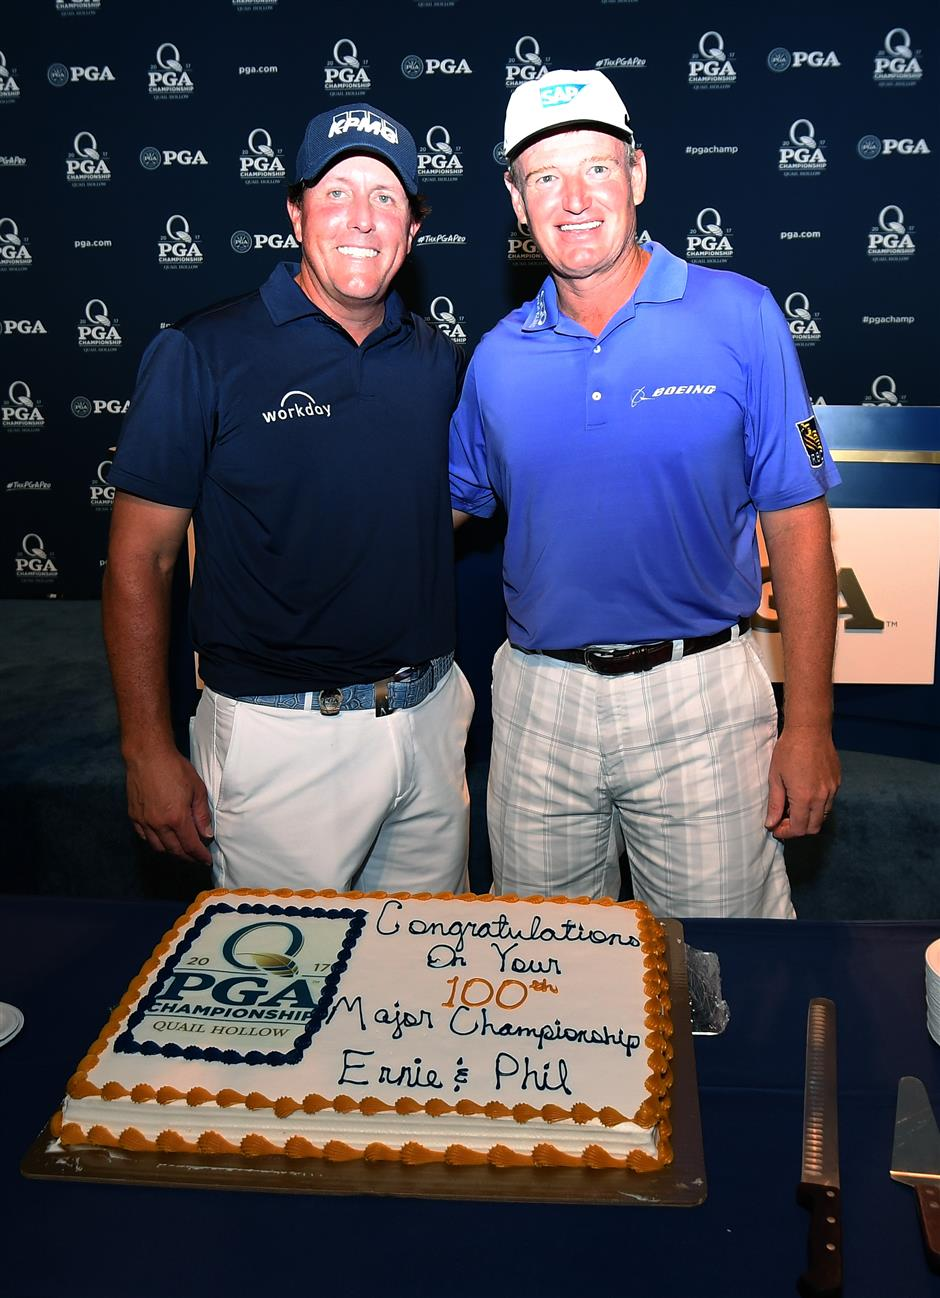 Mickelson, Els reach milestone together in 100th major